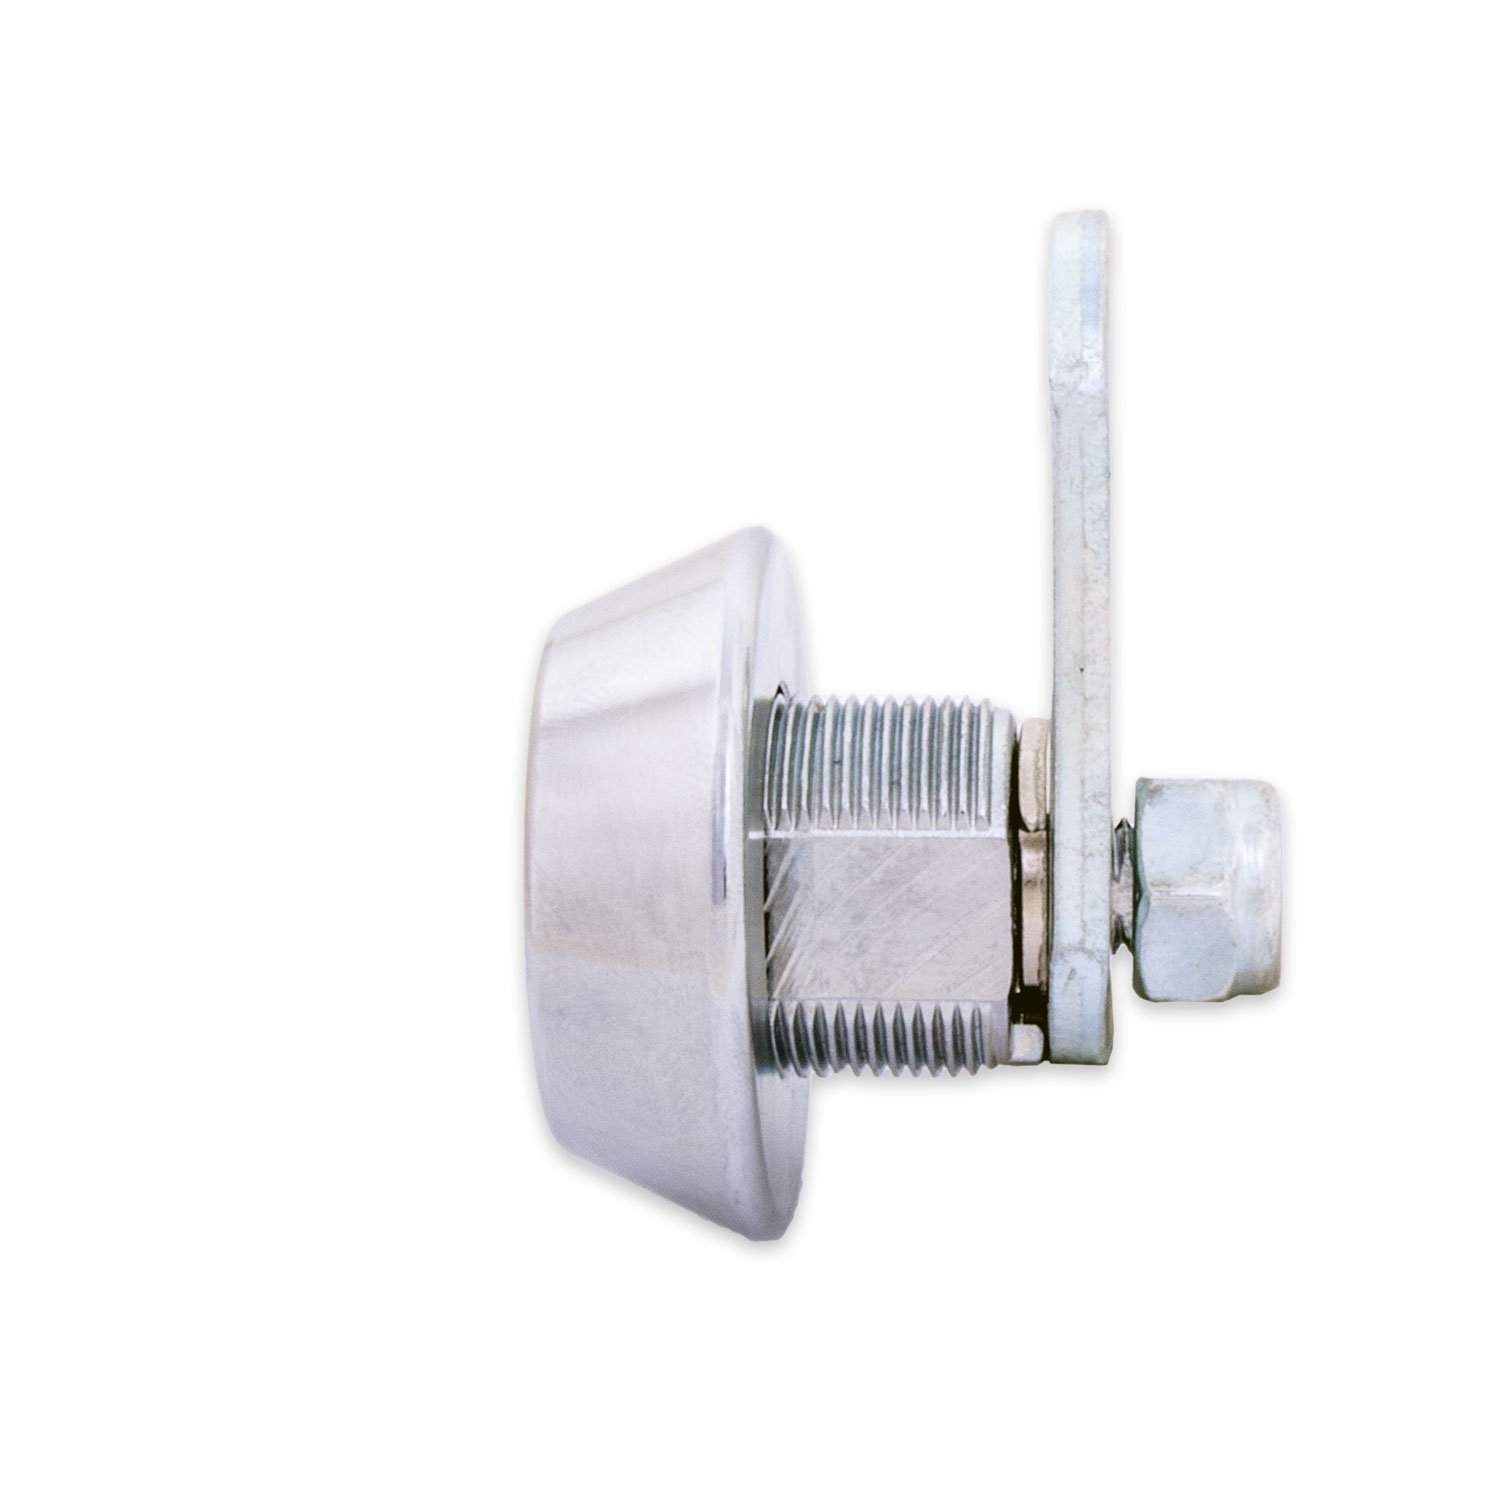 FJM Security C8418B-KD European Style Cam Lock with Stainless Steel Collar Ring and Chrome Finish, Keyed Different by FJM Security (Image #2)